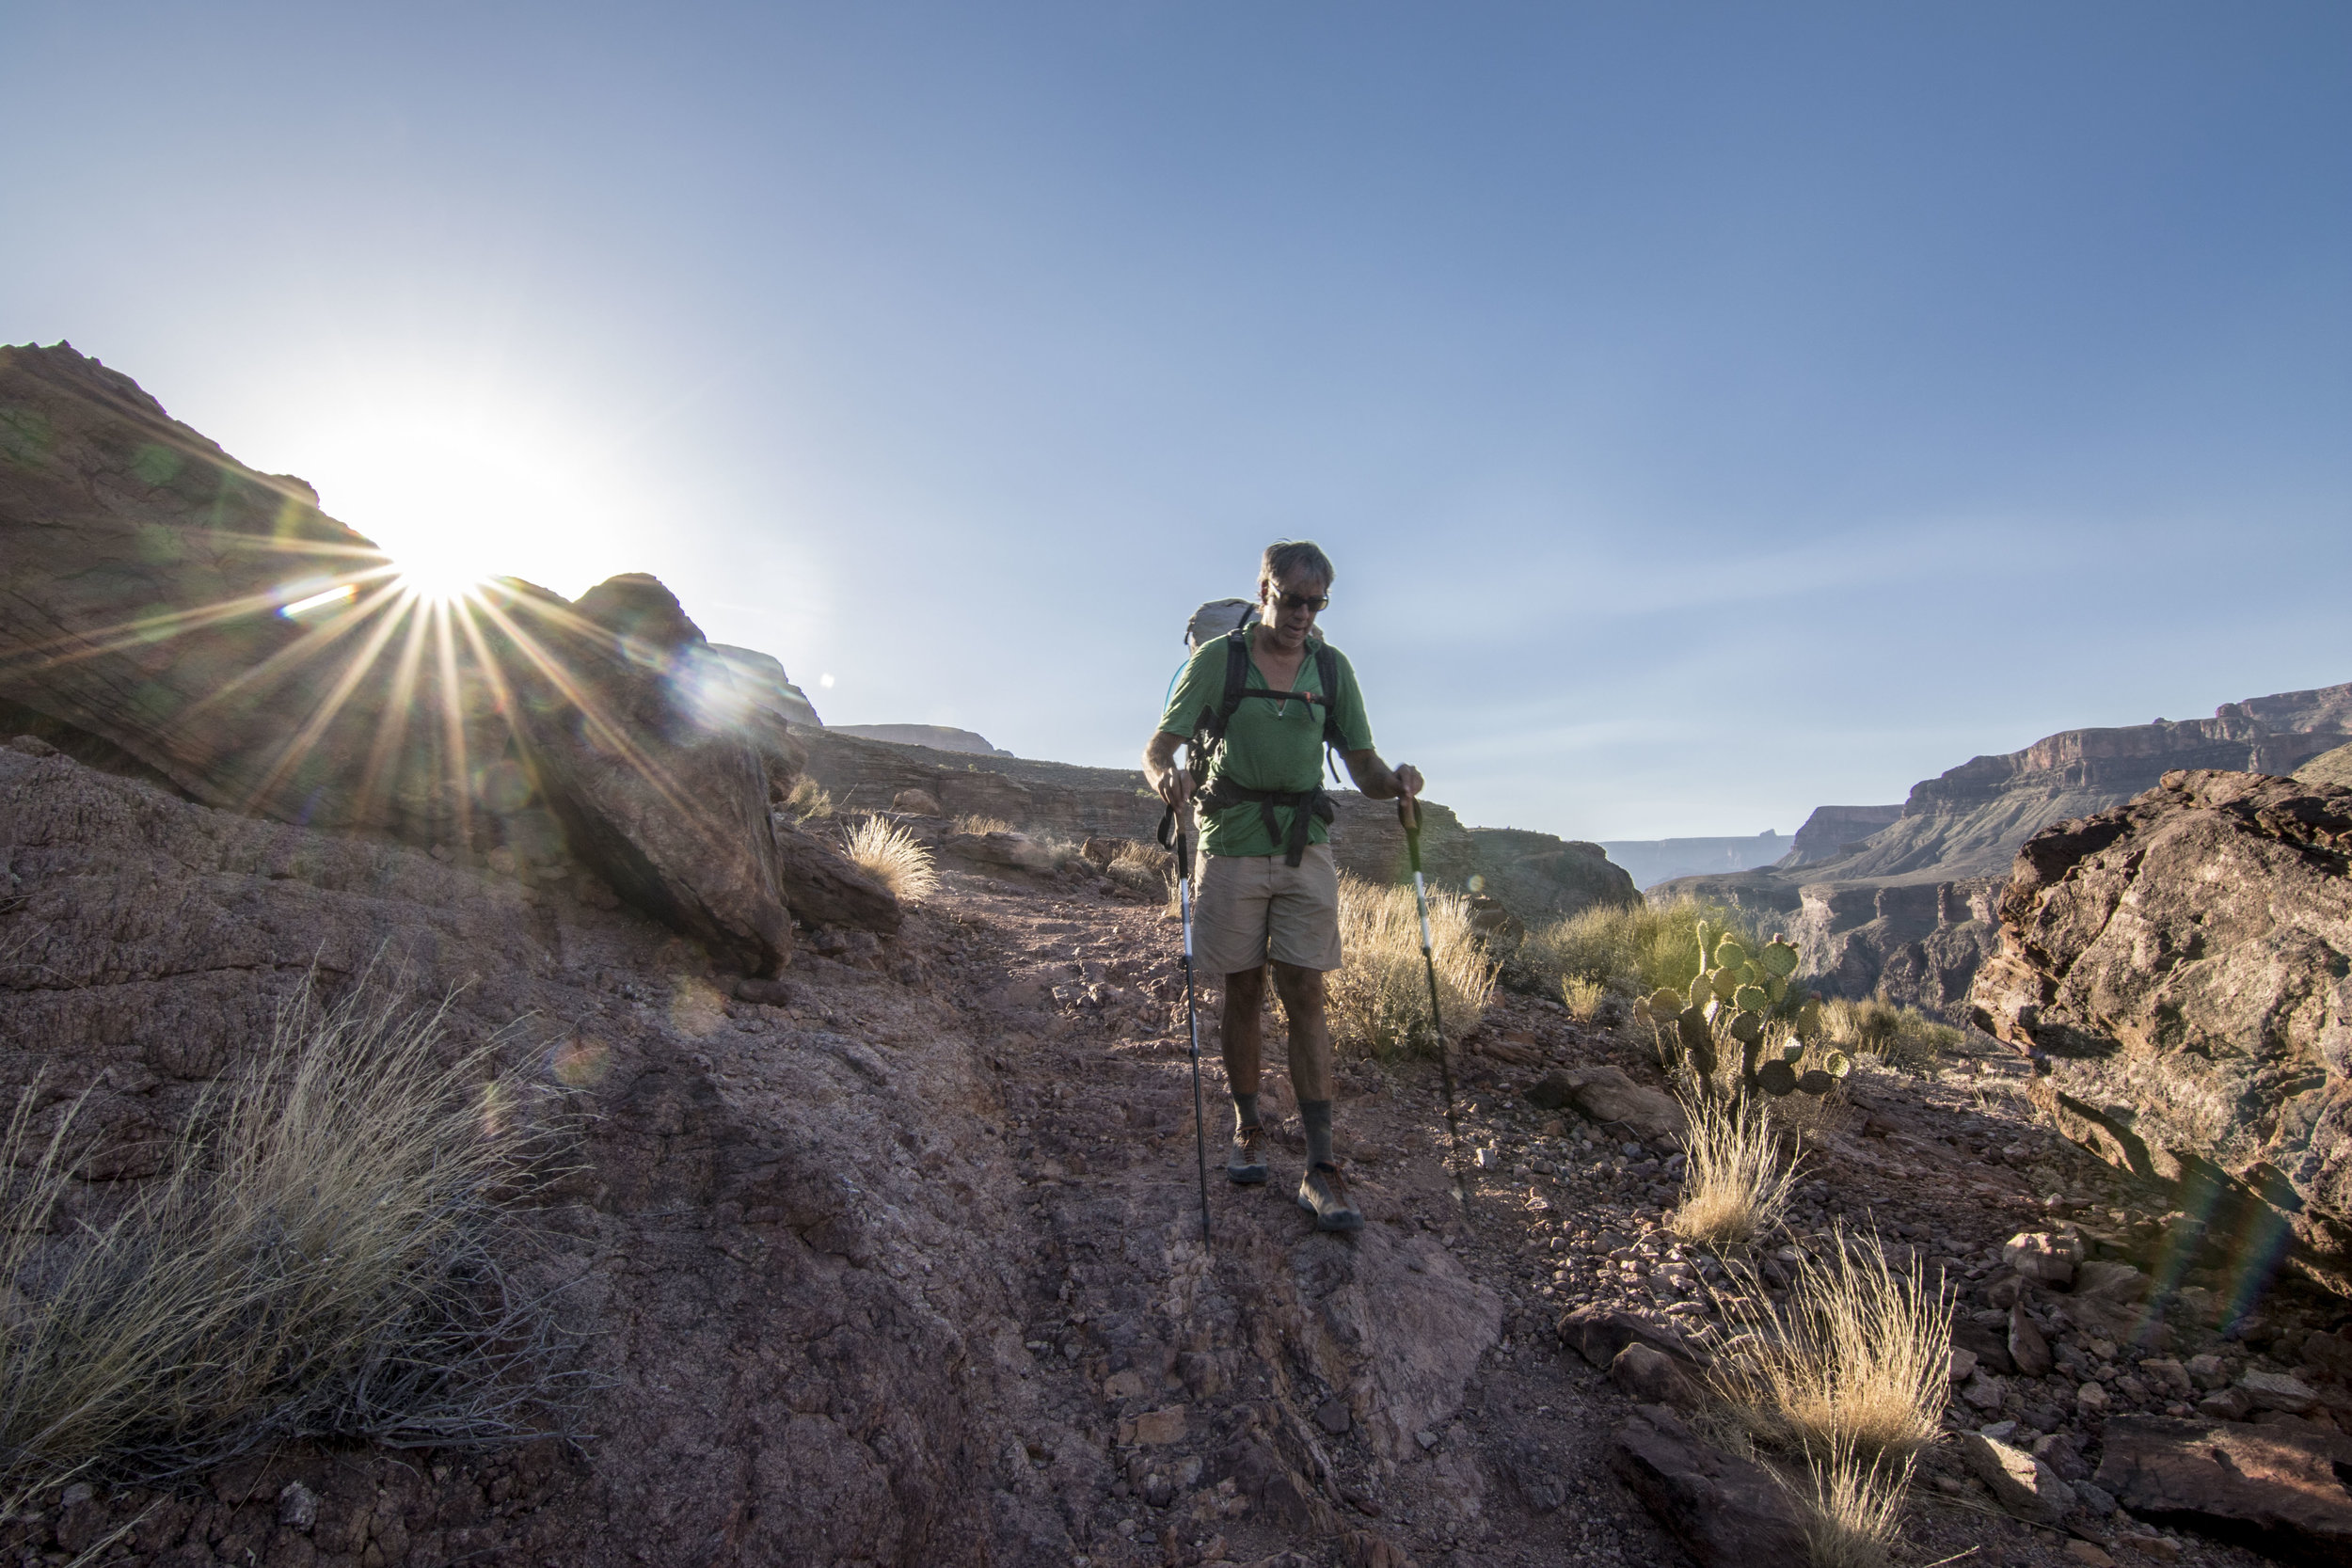 6:45am on Day 3 - rushing to get off the plateau before the sun hits